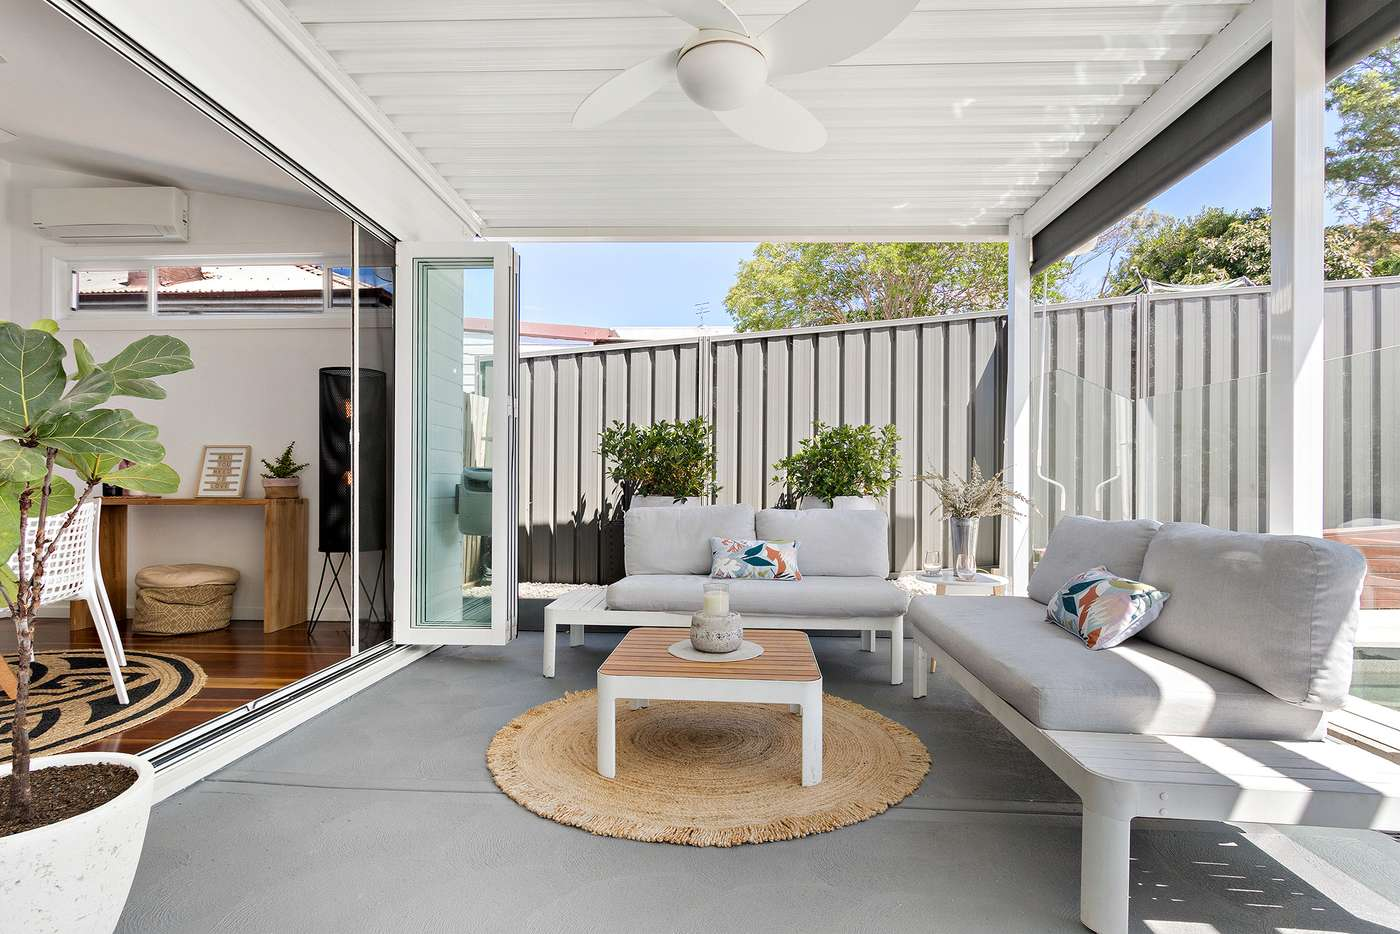 Sixth view of Homely house listing, 8 Bailey Street, Adamstown NSW 2289